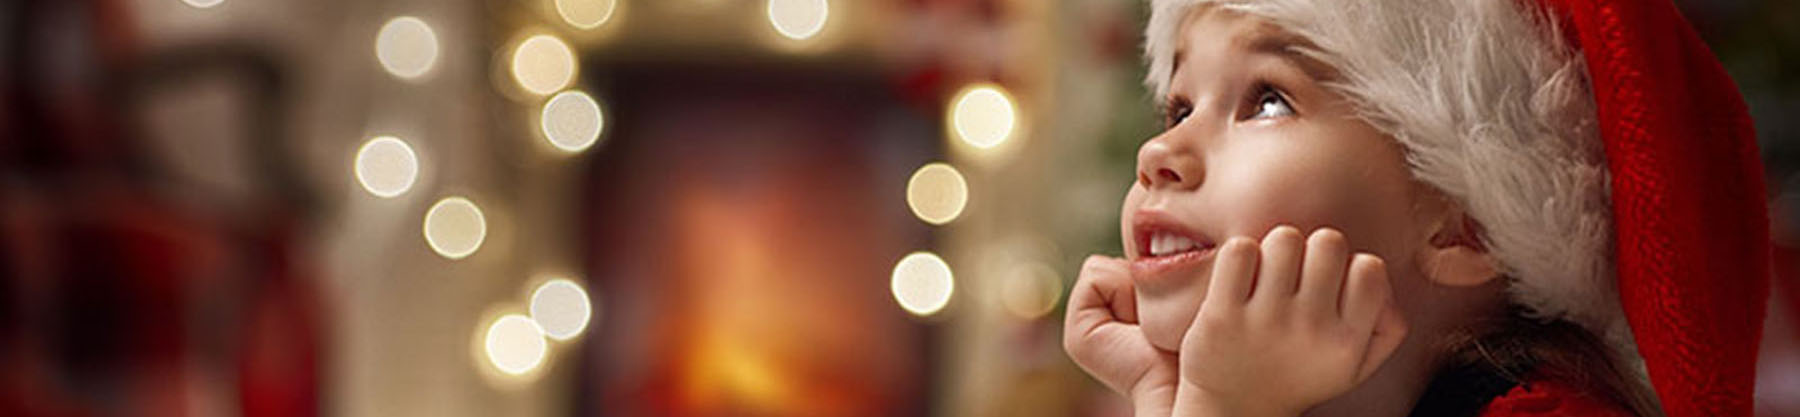 5 simple ways to make Christmas special for kids